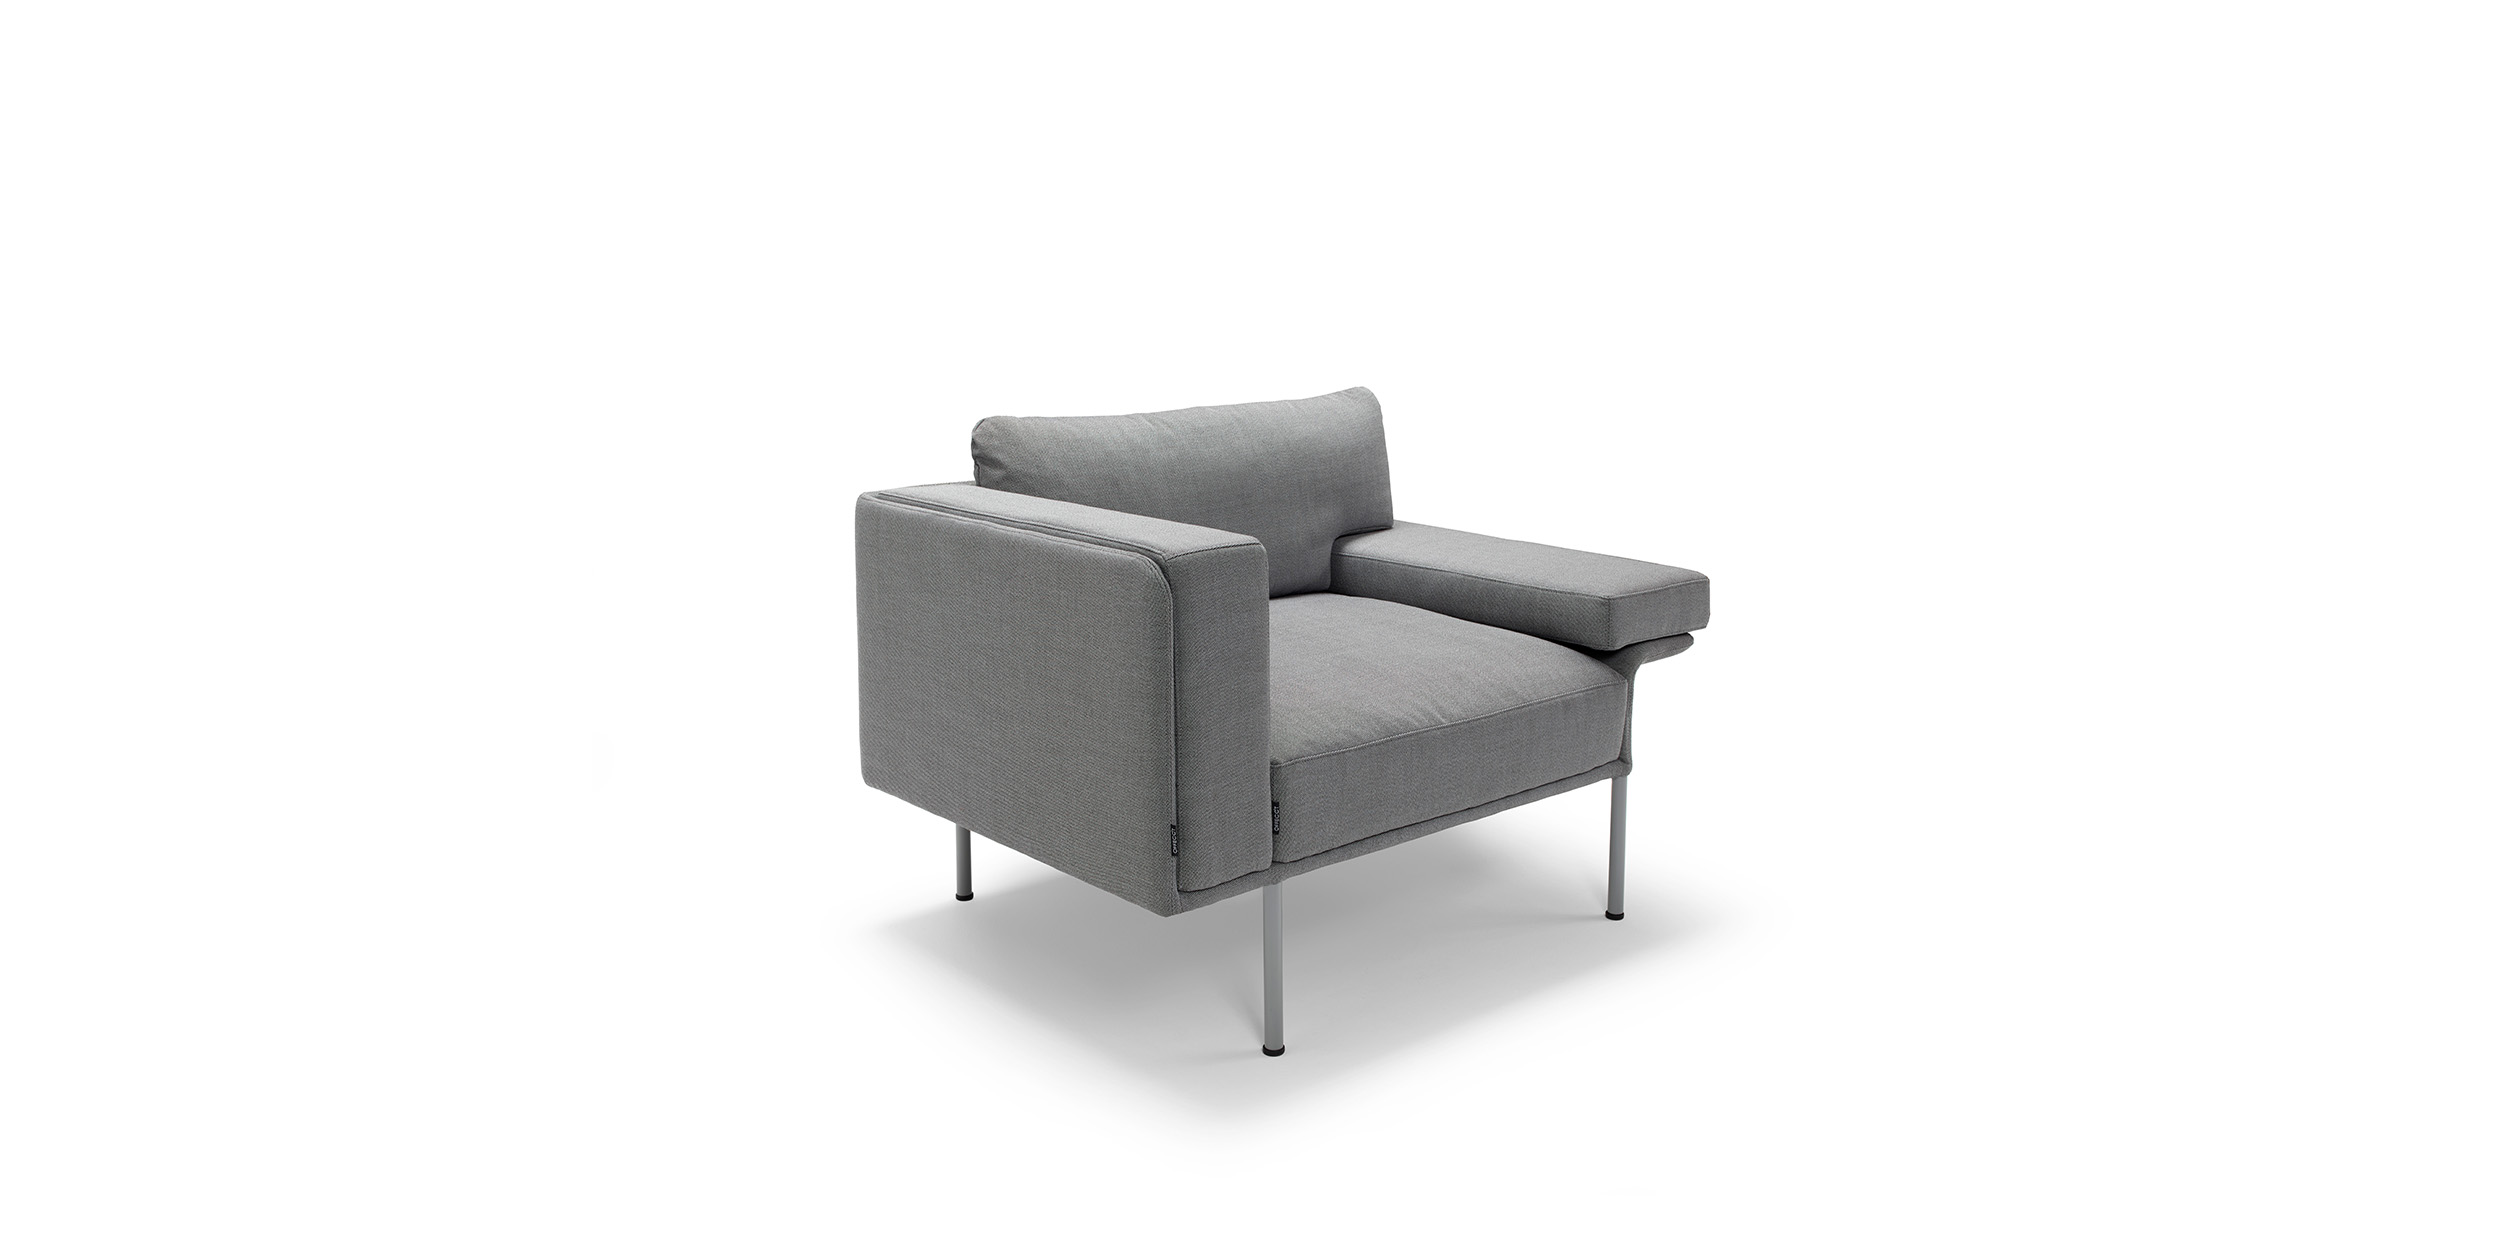 Varilounge Low, Easy chair by Christophe Pillet